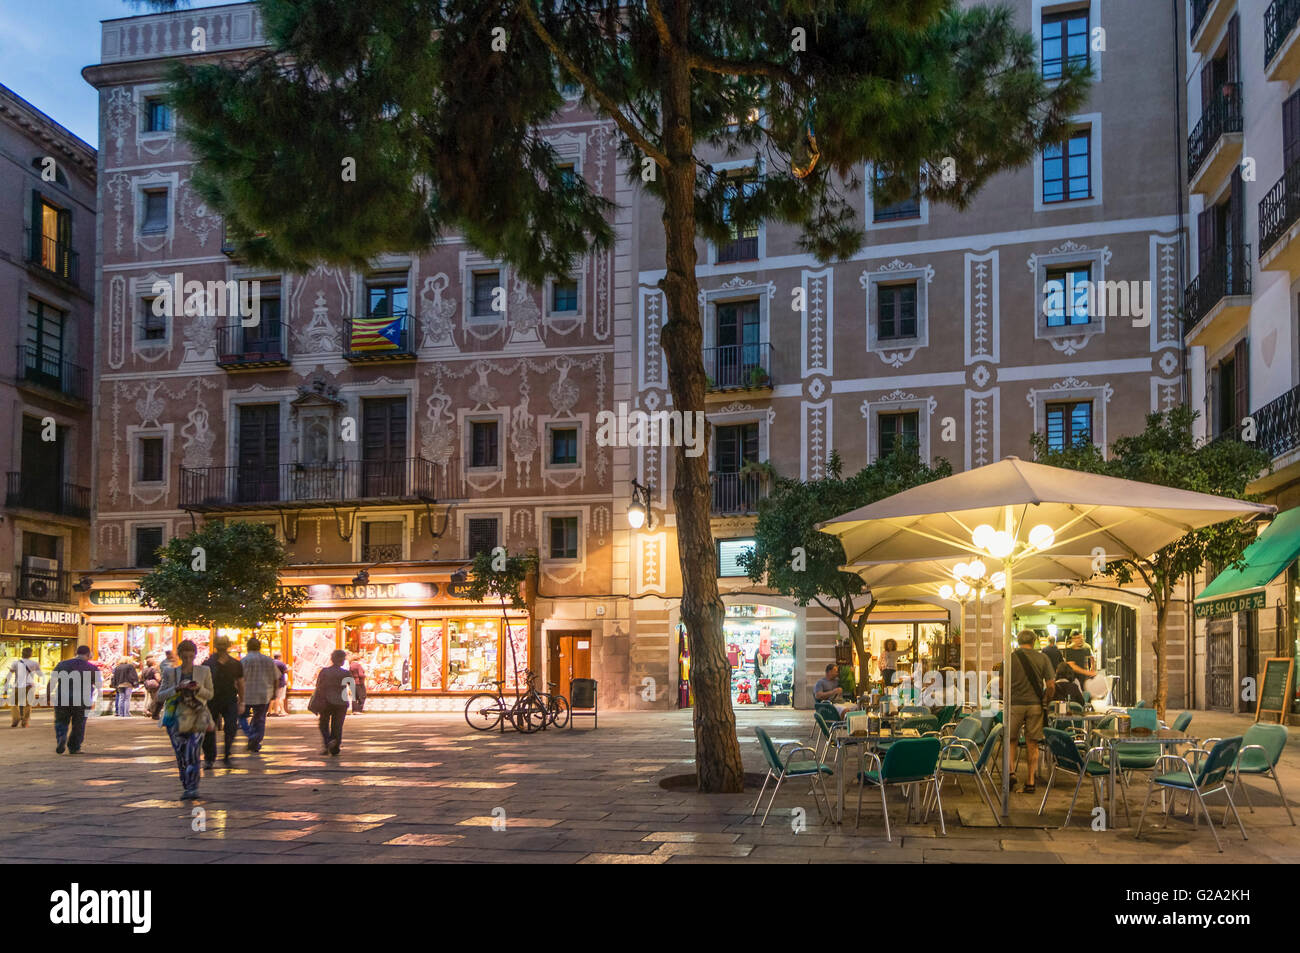 Barri Gotic, Square, architecture with ornaments, Street cafe, Barcelona Stock Photo